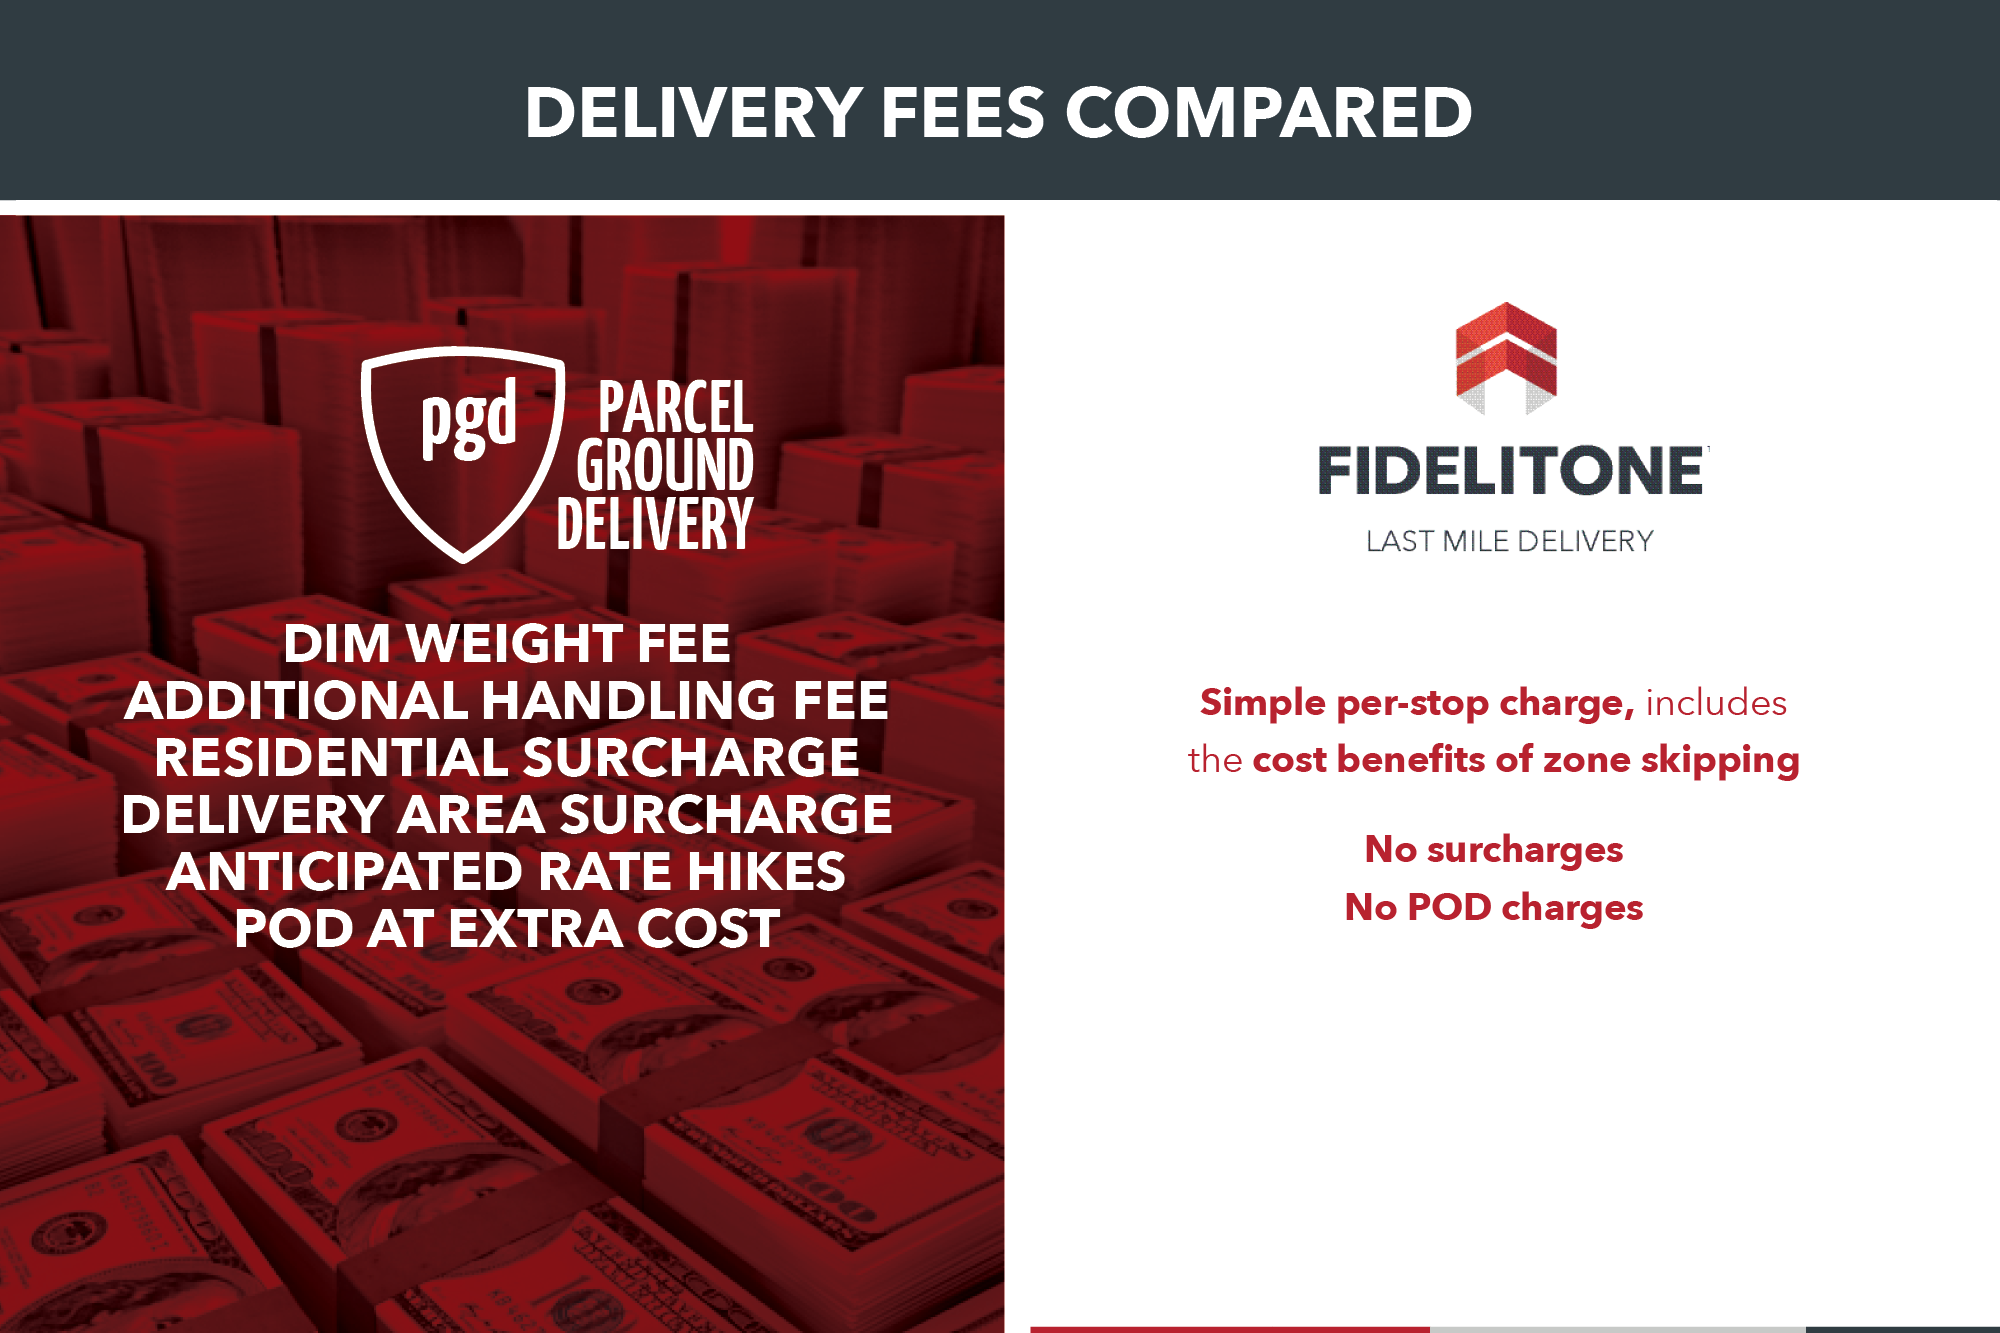 Parcel Carrier Fees Compared | Last Mile Delivery